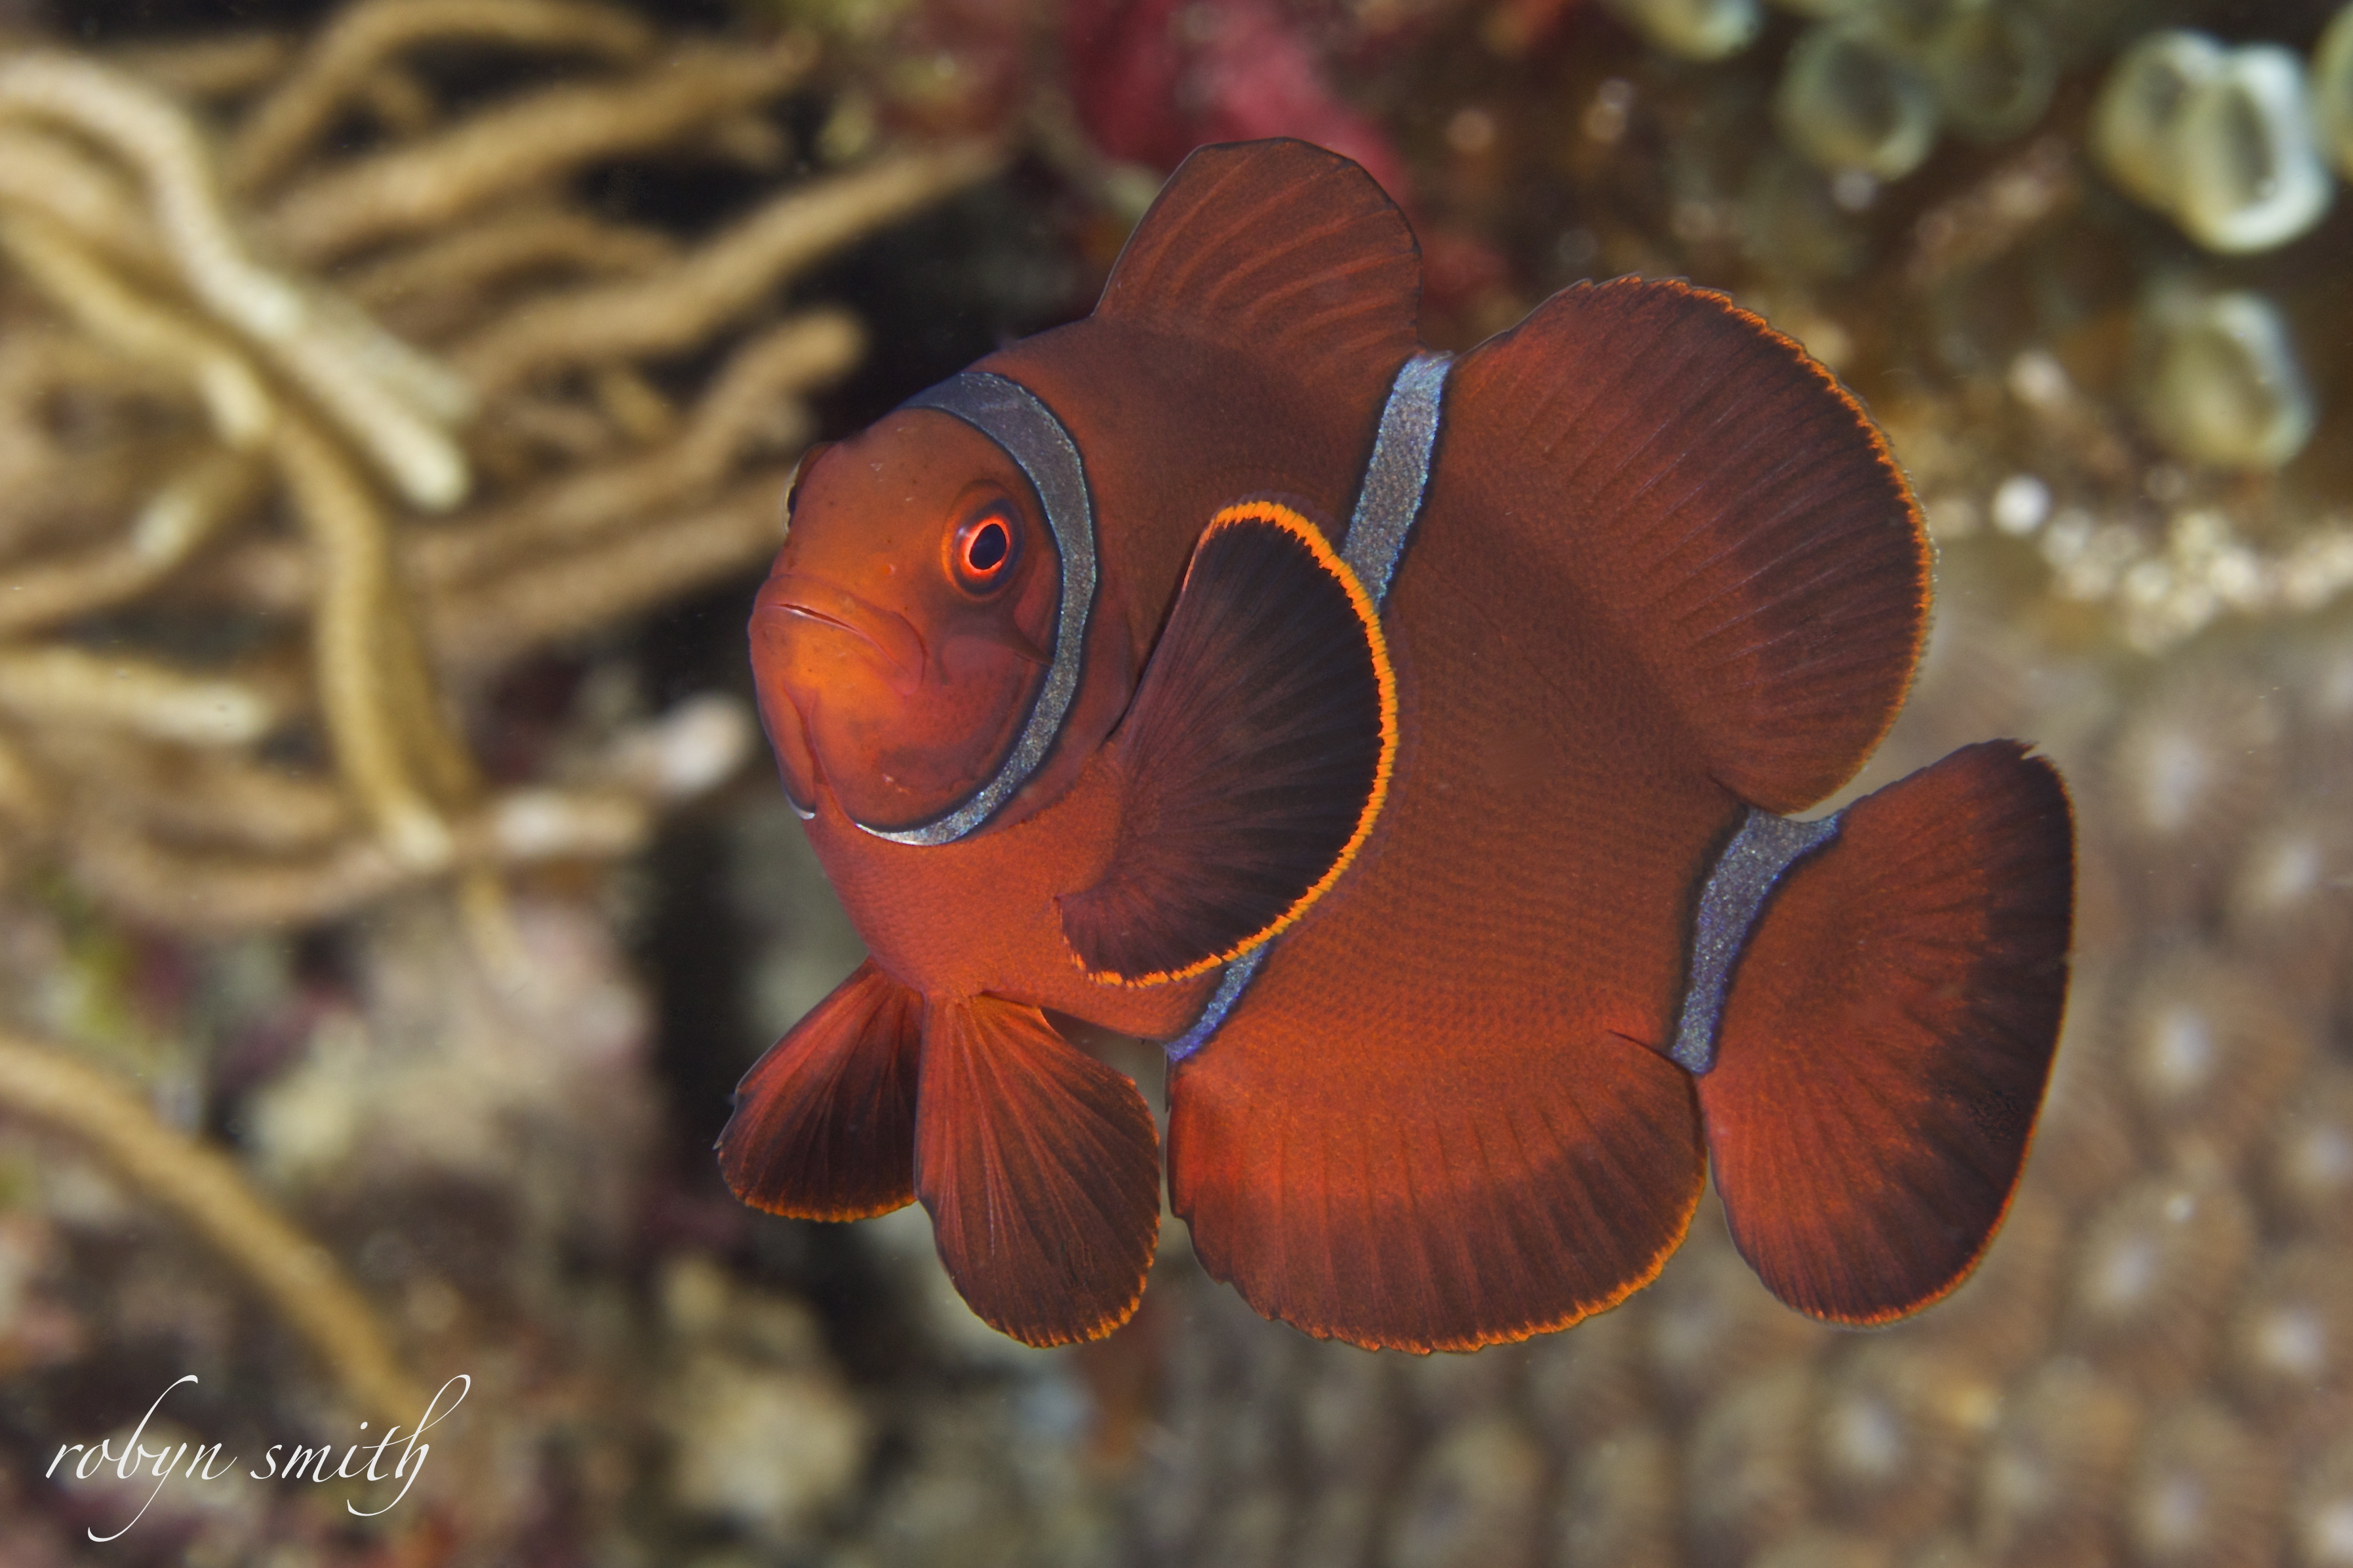 anemone fish Archives - Murex Dive ResortsMurex Dive Resorts